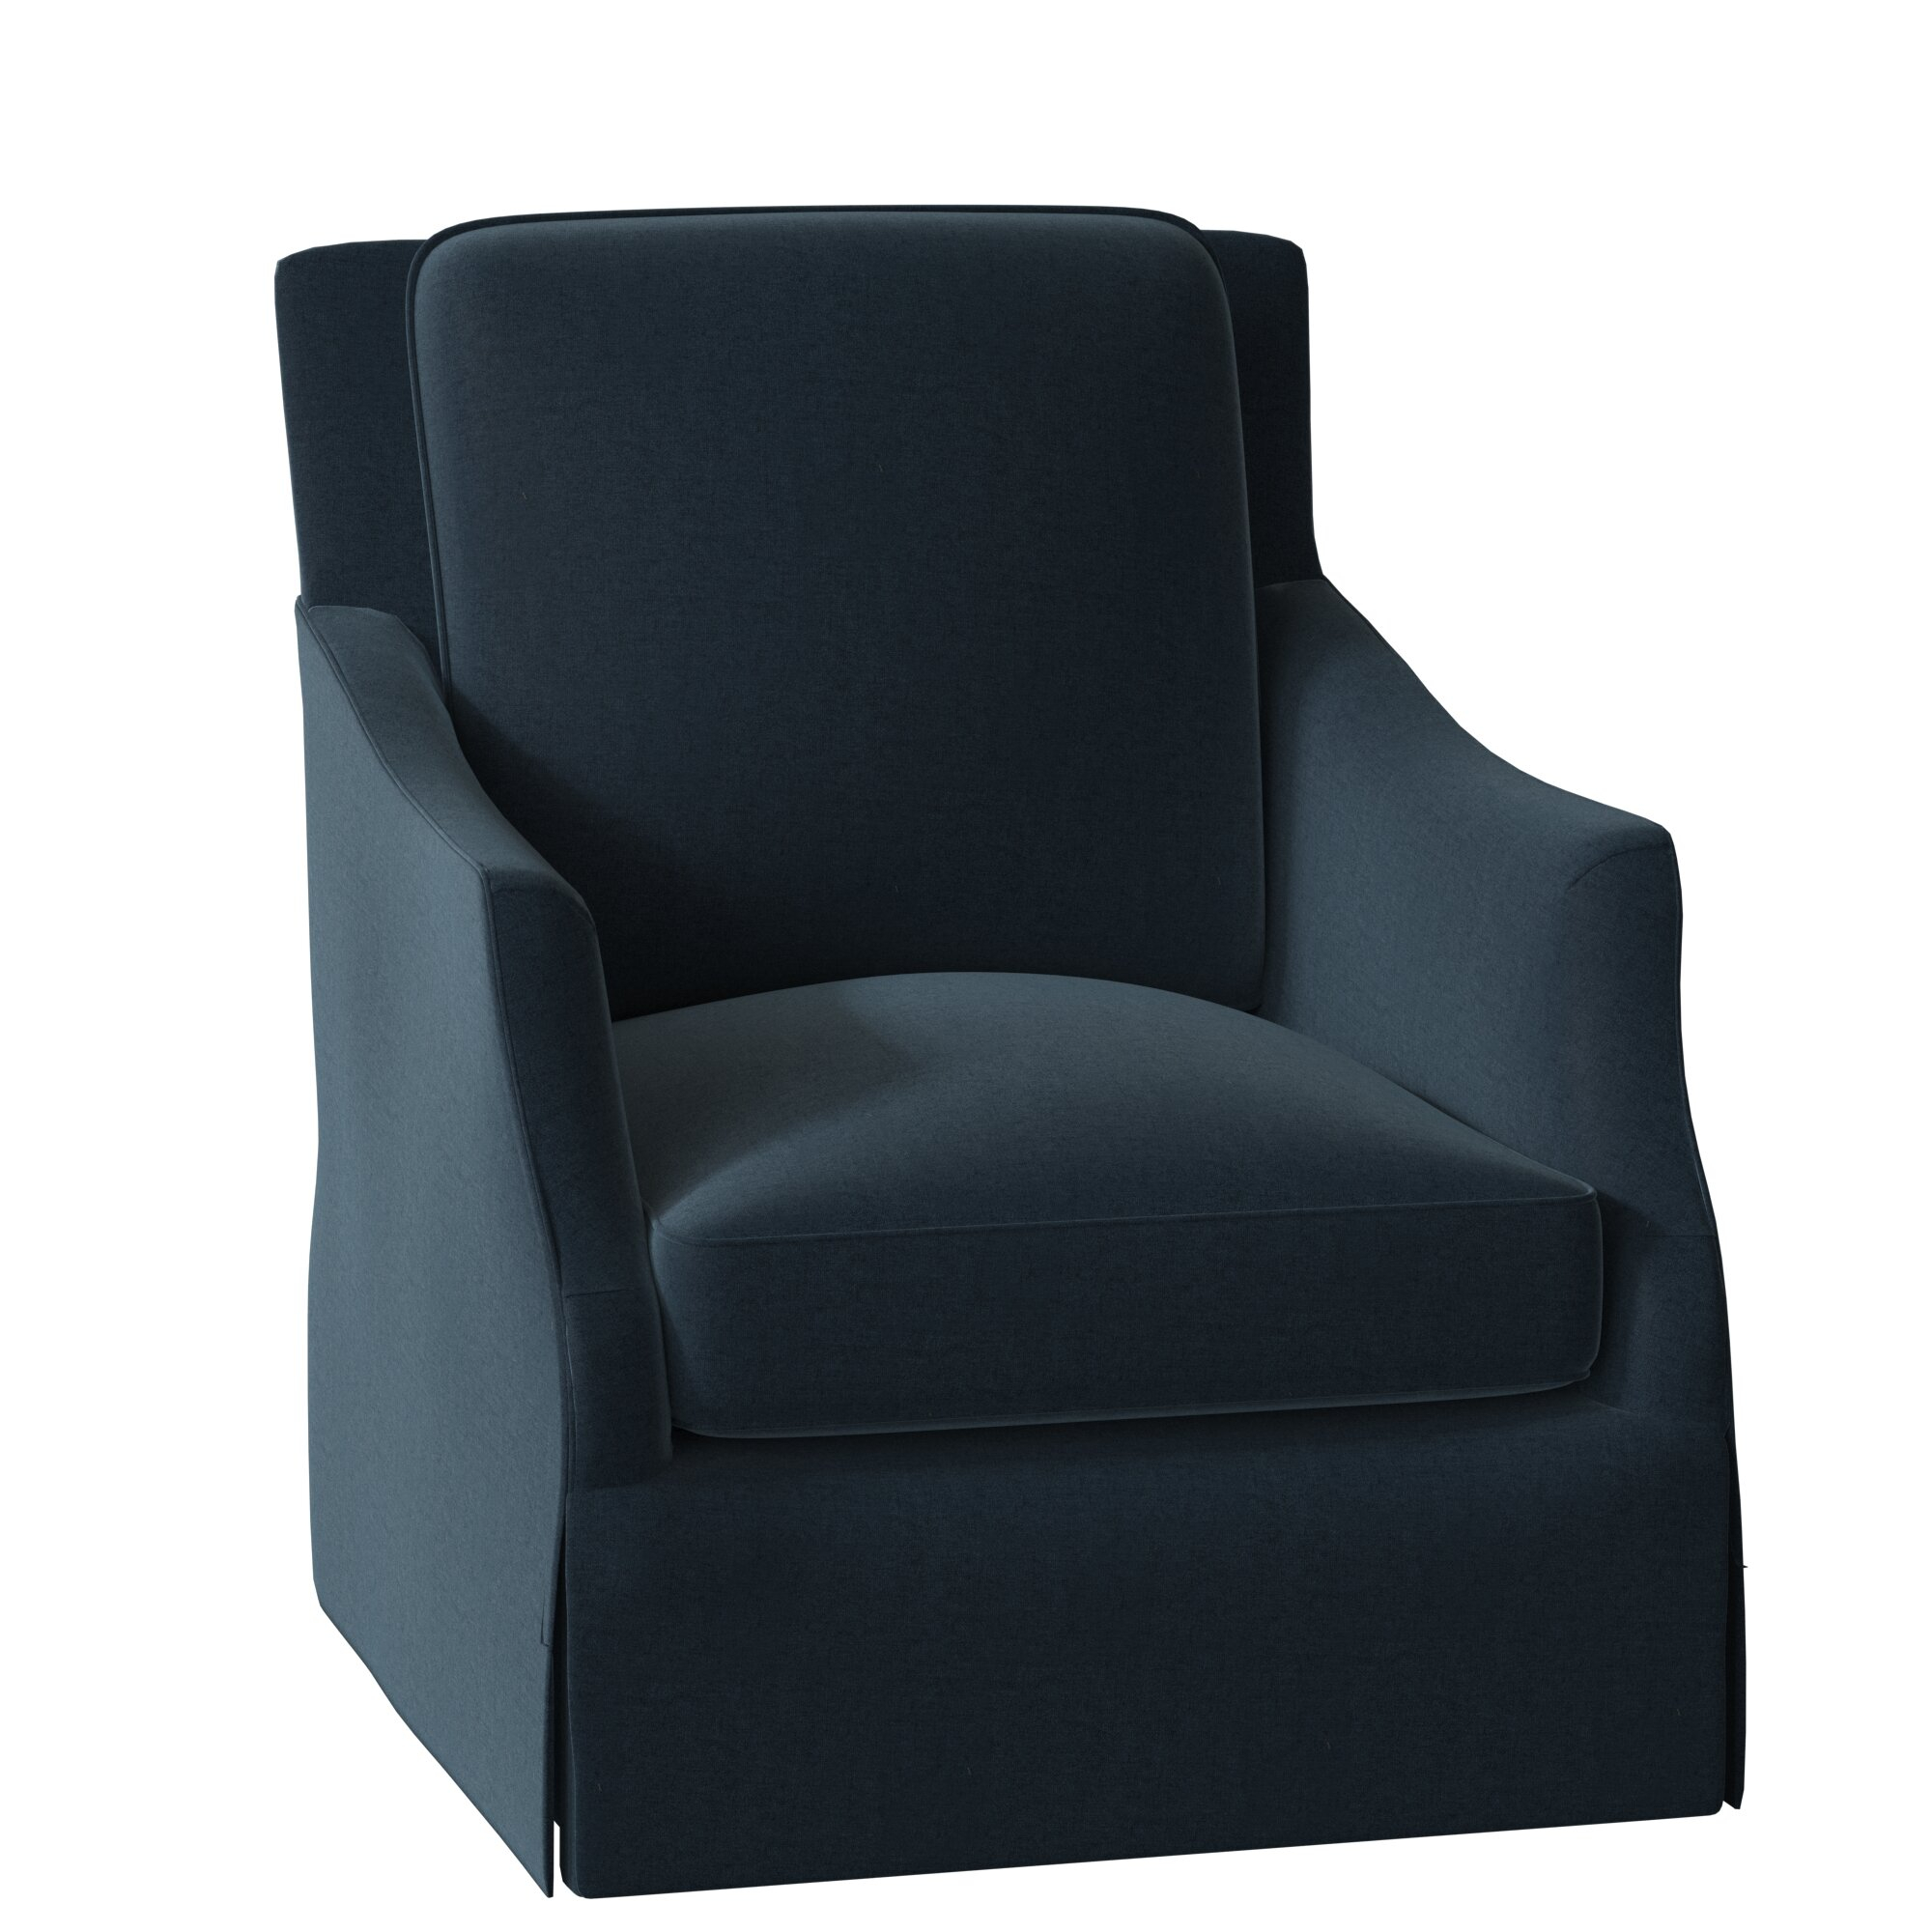 Sabine Swivel Armchair Inside Ronald Polyester Blend Armchairs (View 11 of 15)